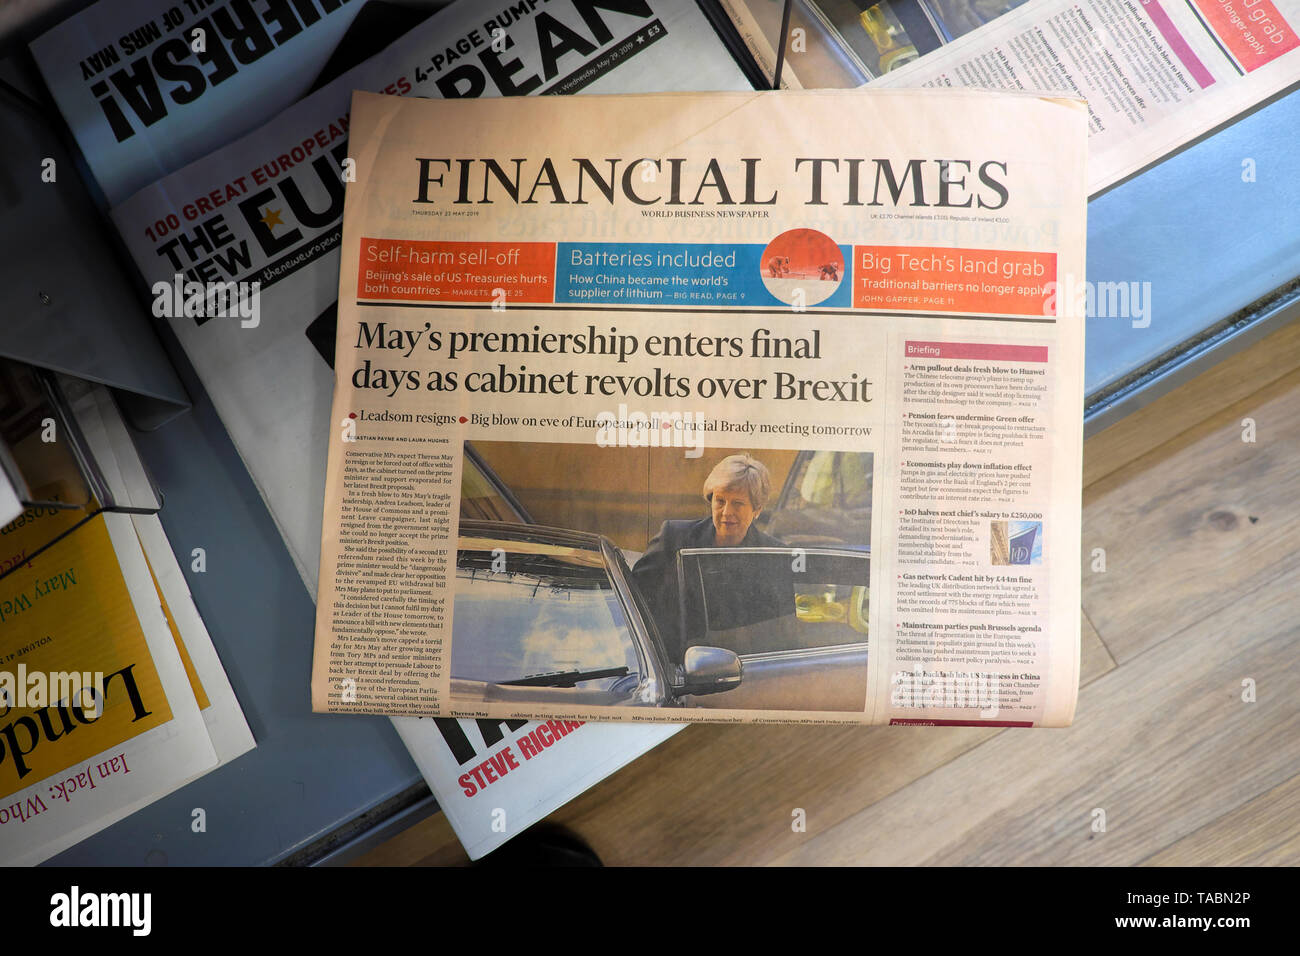 Financial Times newspaper headlines front page 'May's premiership enters final days as cabinet revolts over Brexit' for PM Theresa May on a supermarket newsstand on 23 May 2019 in London England UK - Stock Image